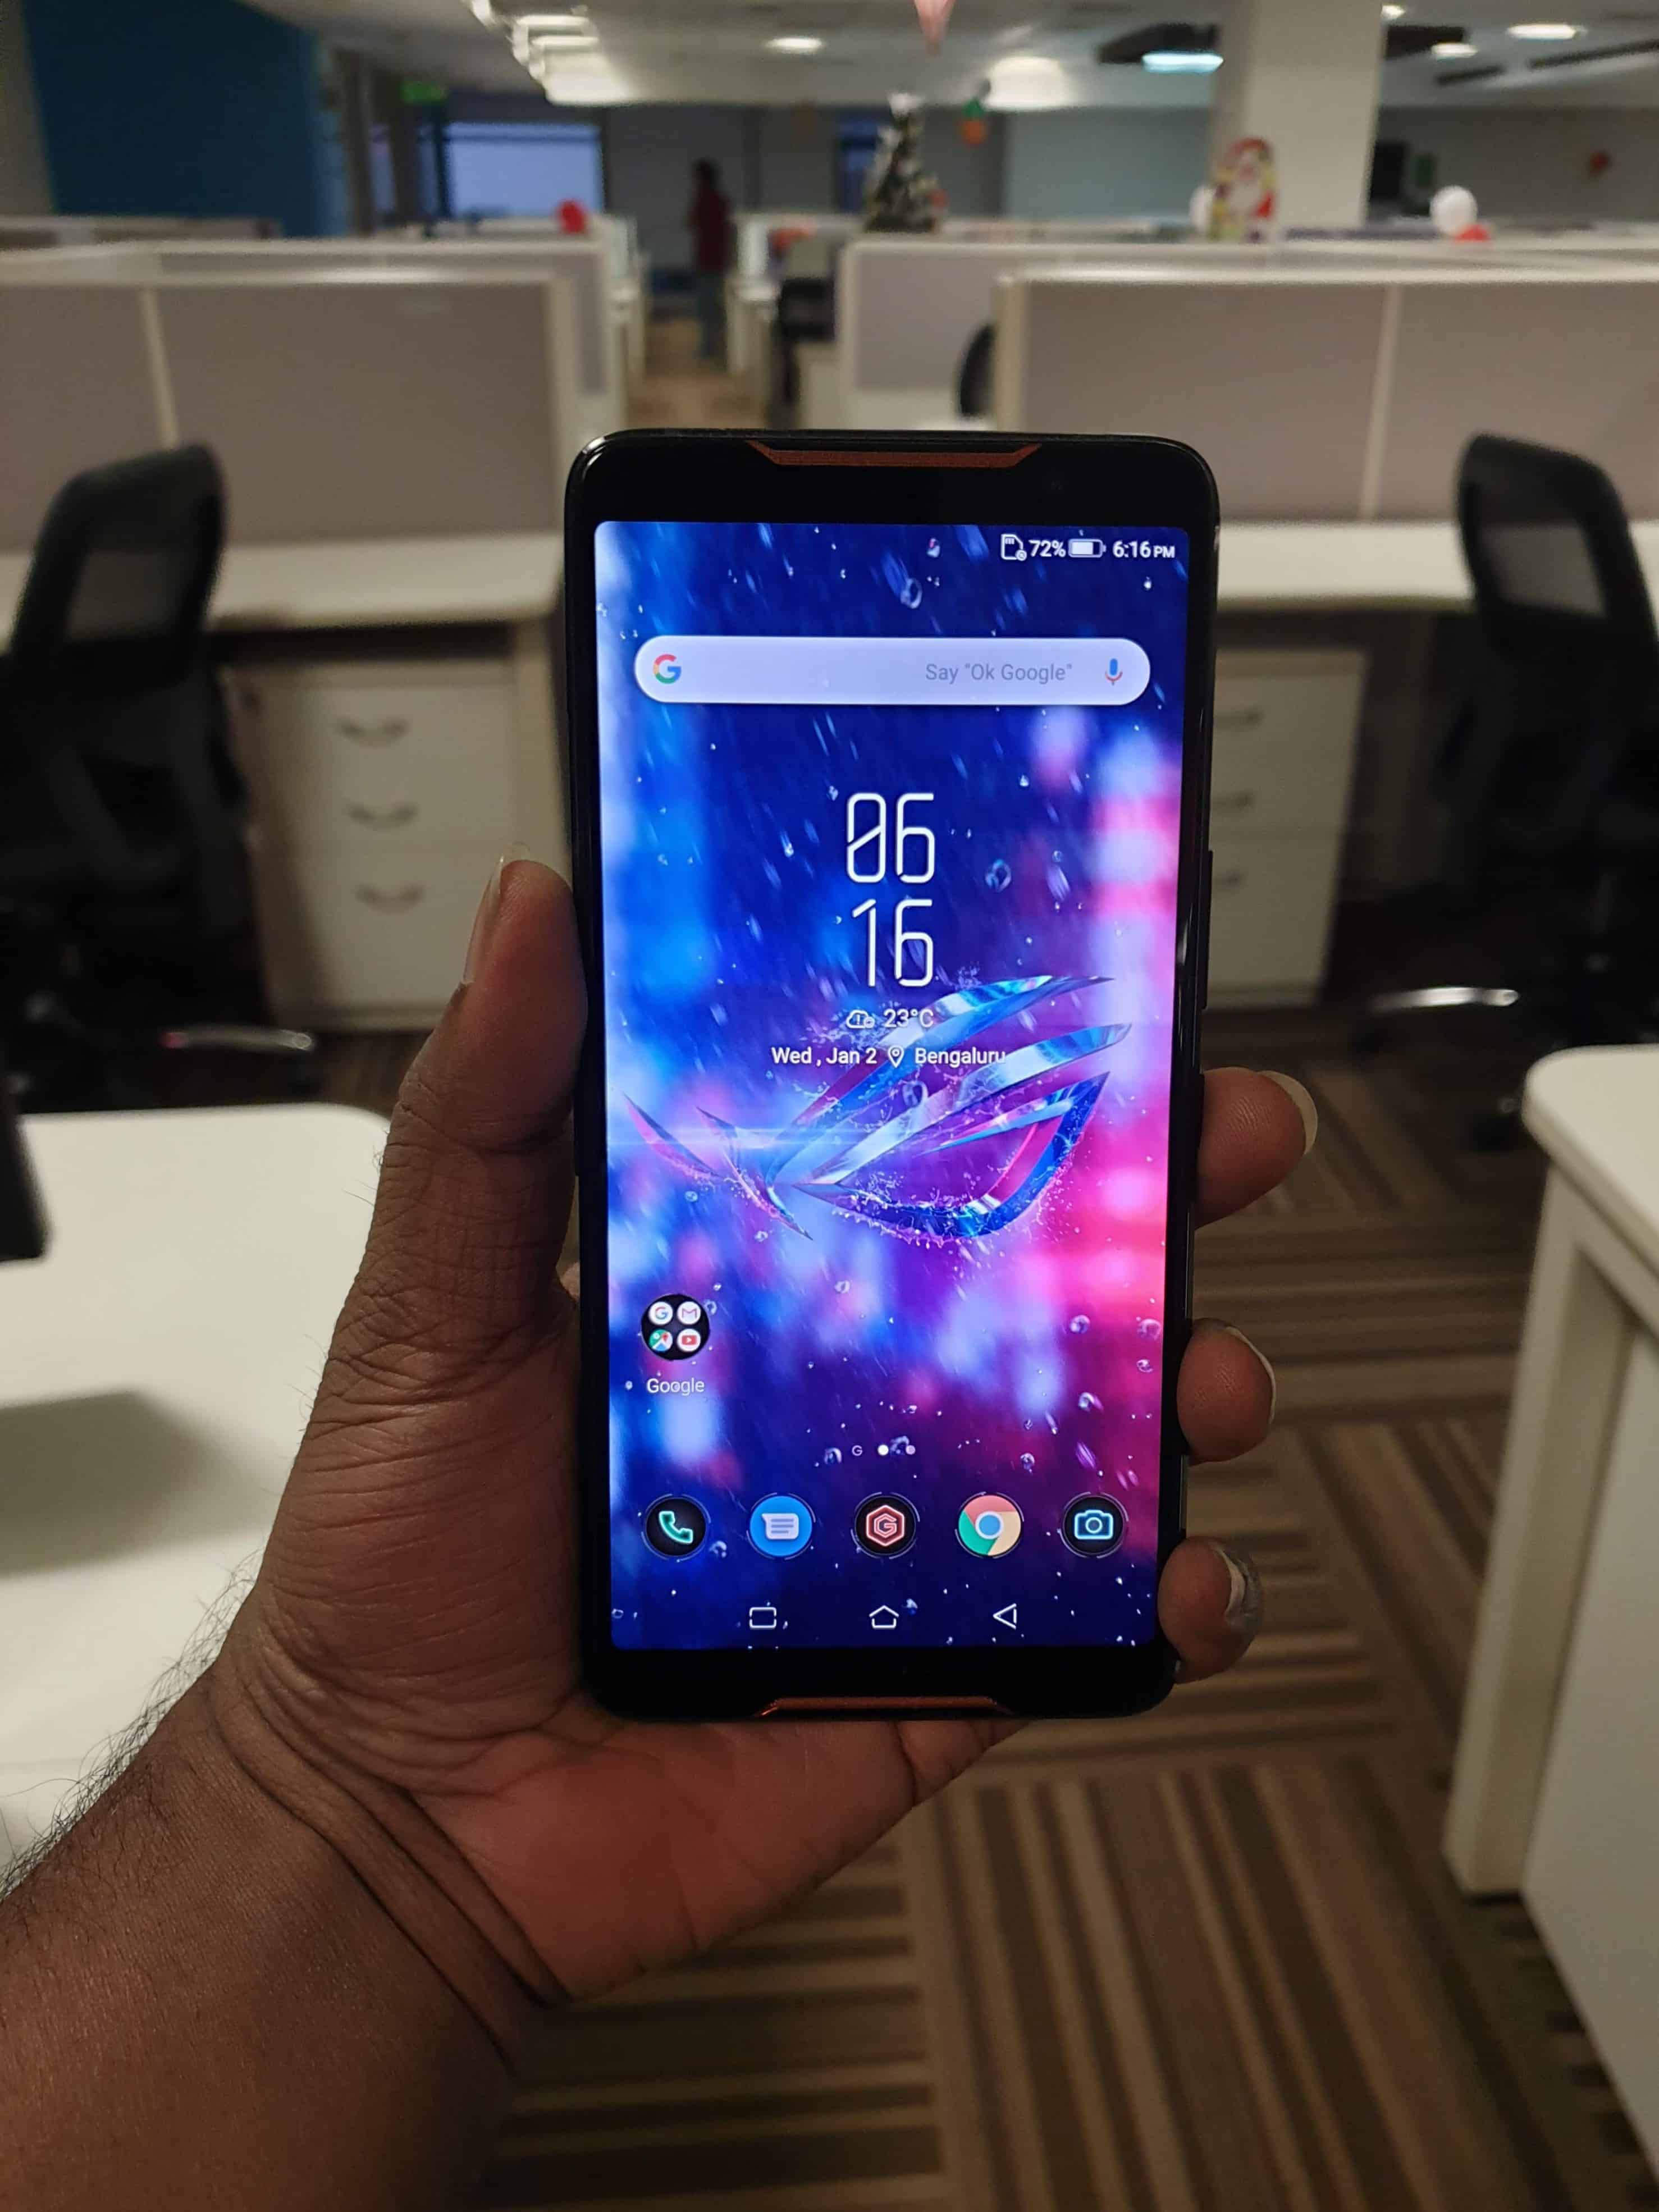 Asus ROG Phone Review - Should You Buy it? - 3